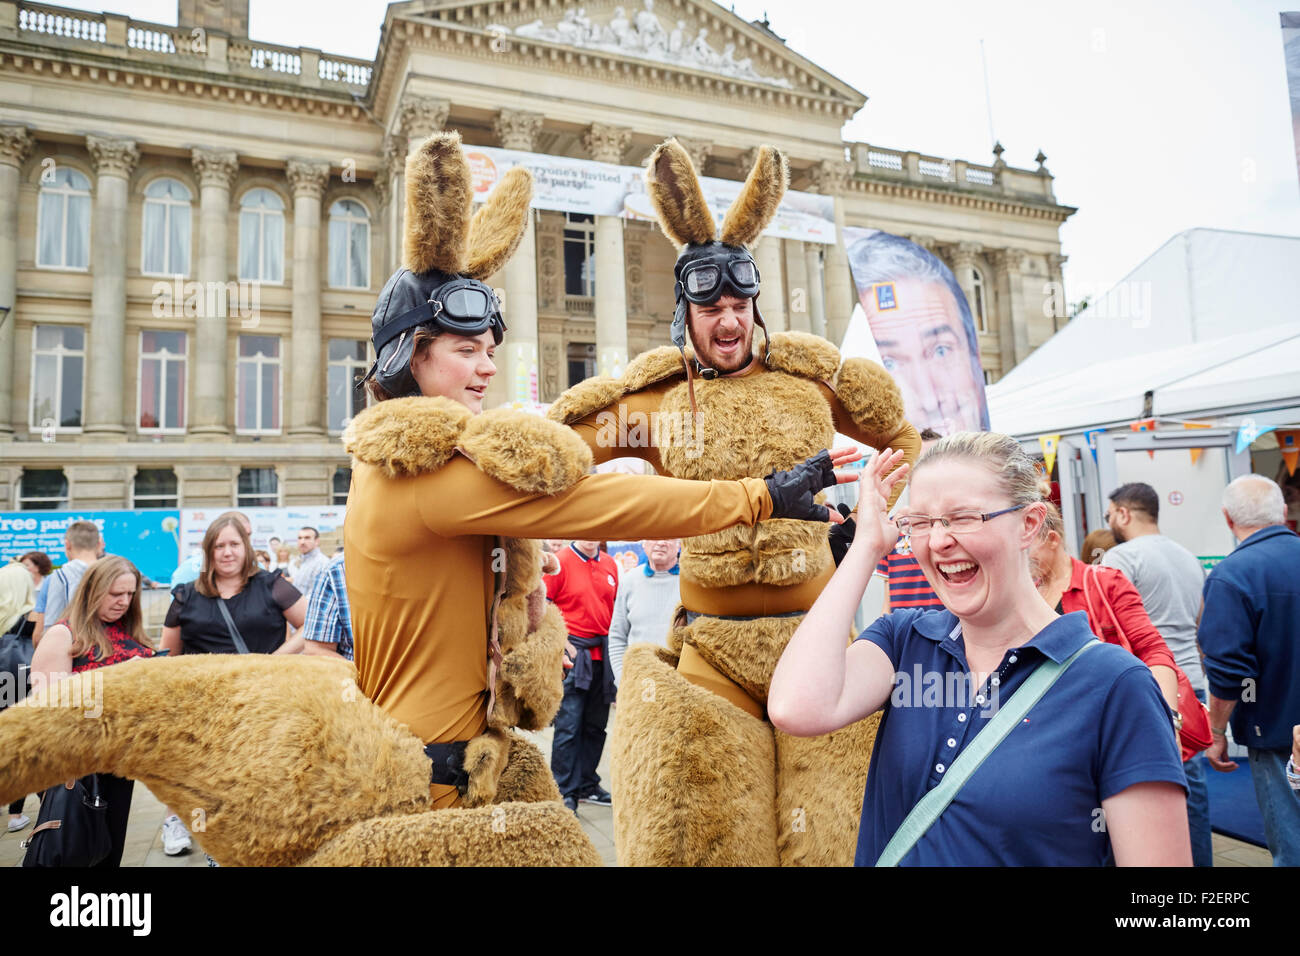 ALDI sponsored 10th Bolton Food and Drink Festival 2015   Kangaroo caricature street entertainers performing performance - Stock Image